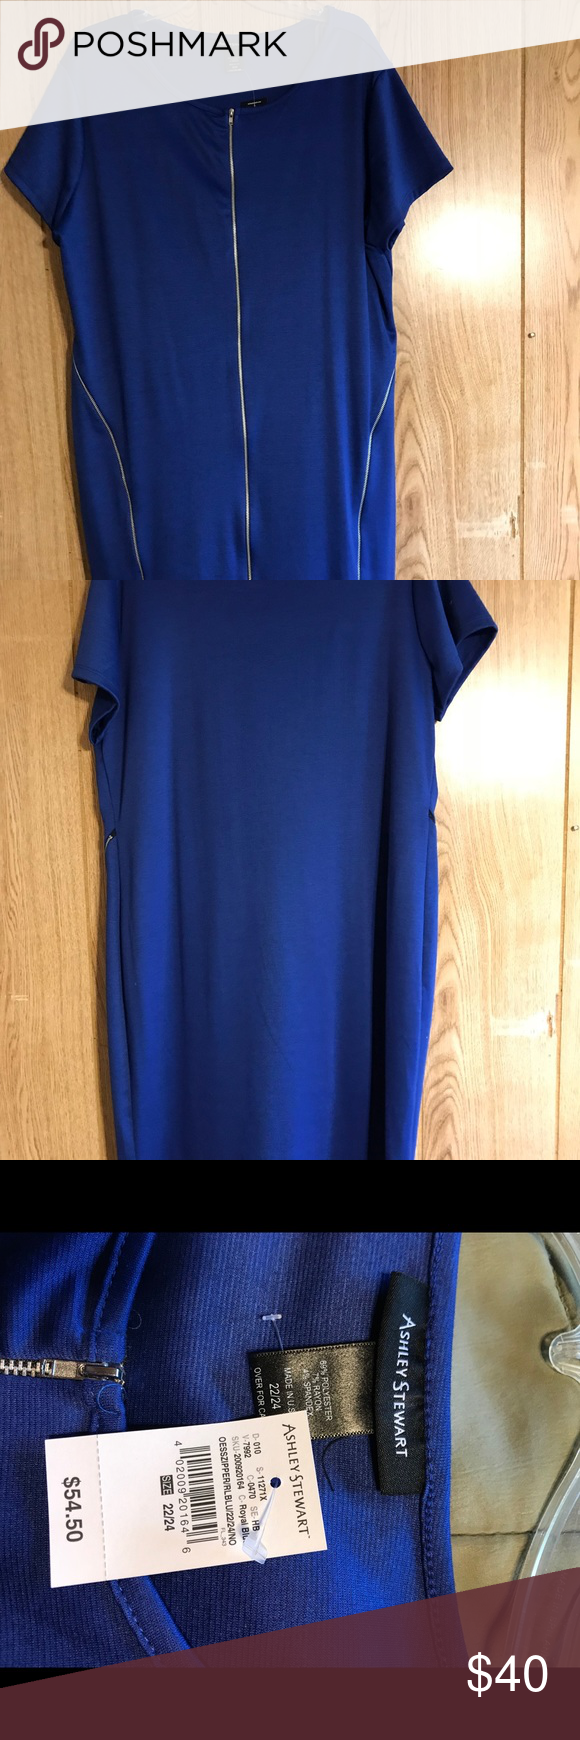 3322e101687 NWT Ashley Stewart Dress Dress has a full working zipper in the front. Plus  has a curved zipper on each side of the dress. Brand new with tags.